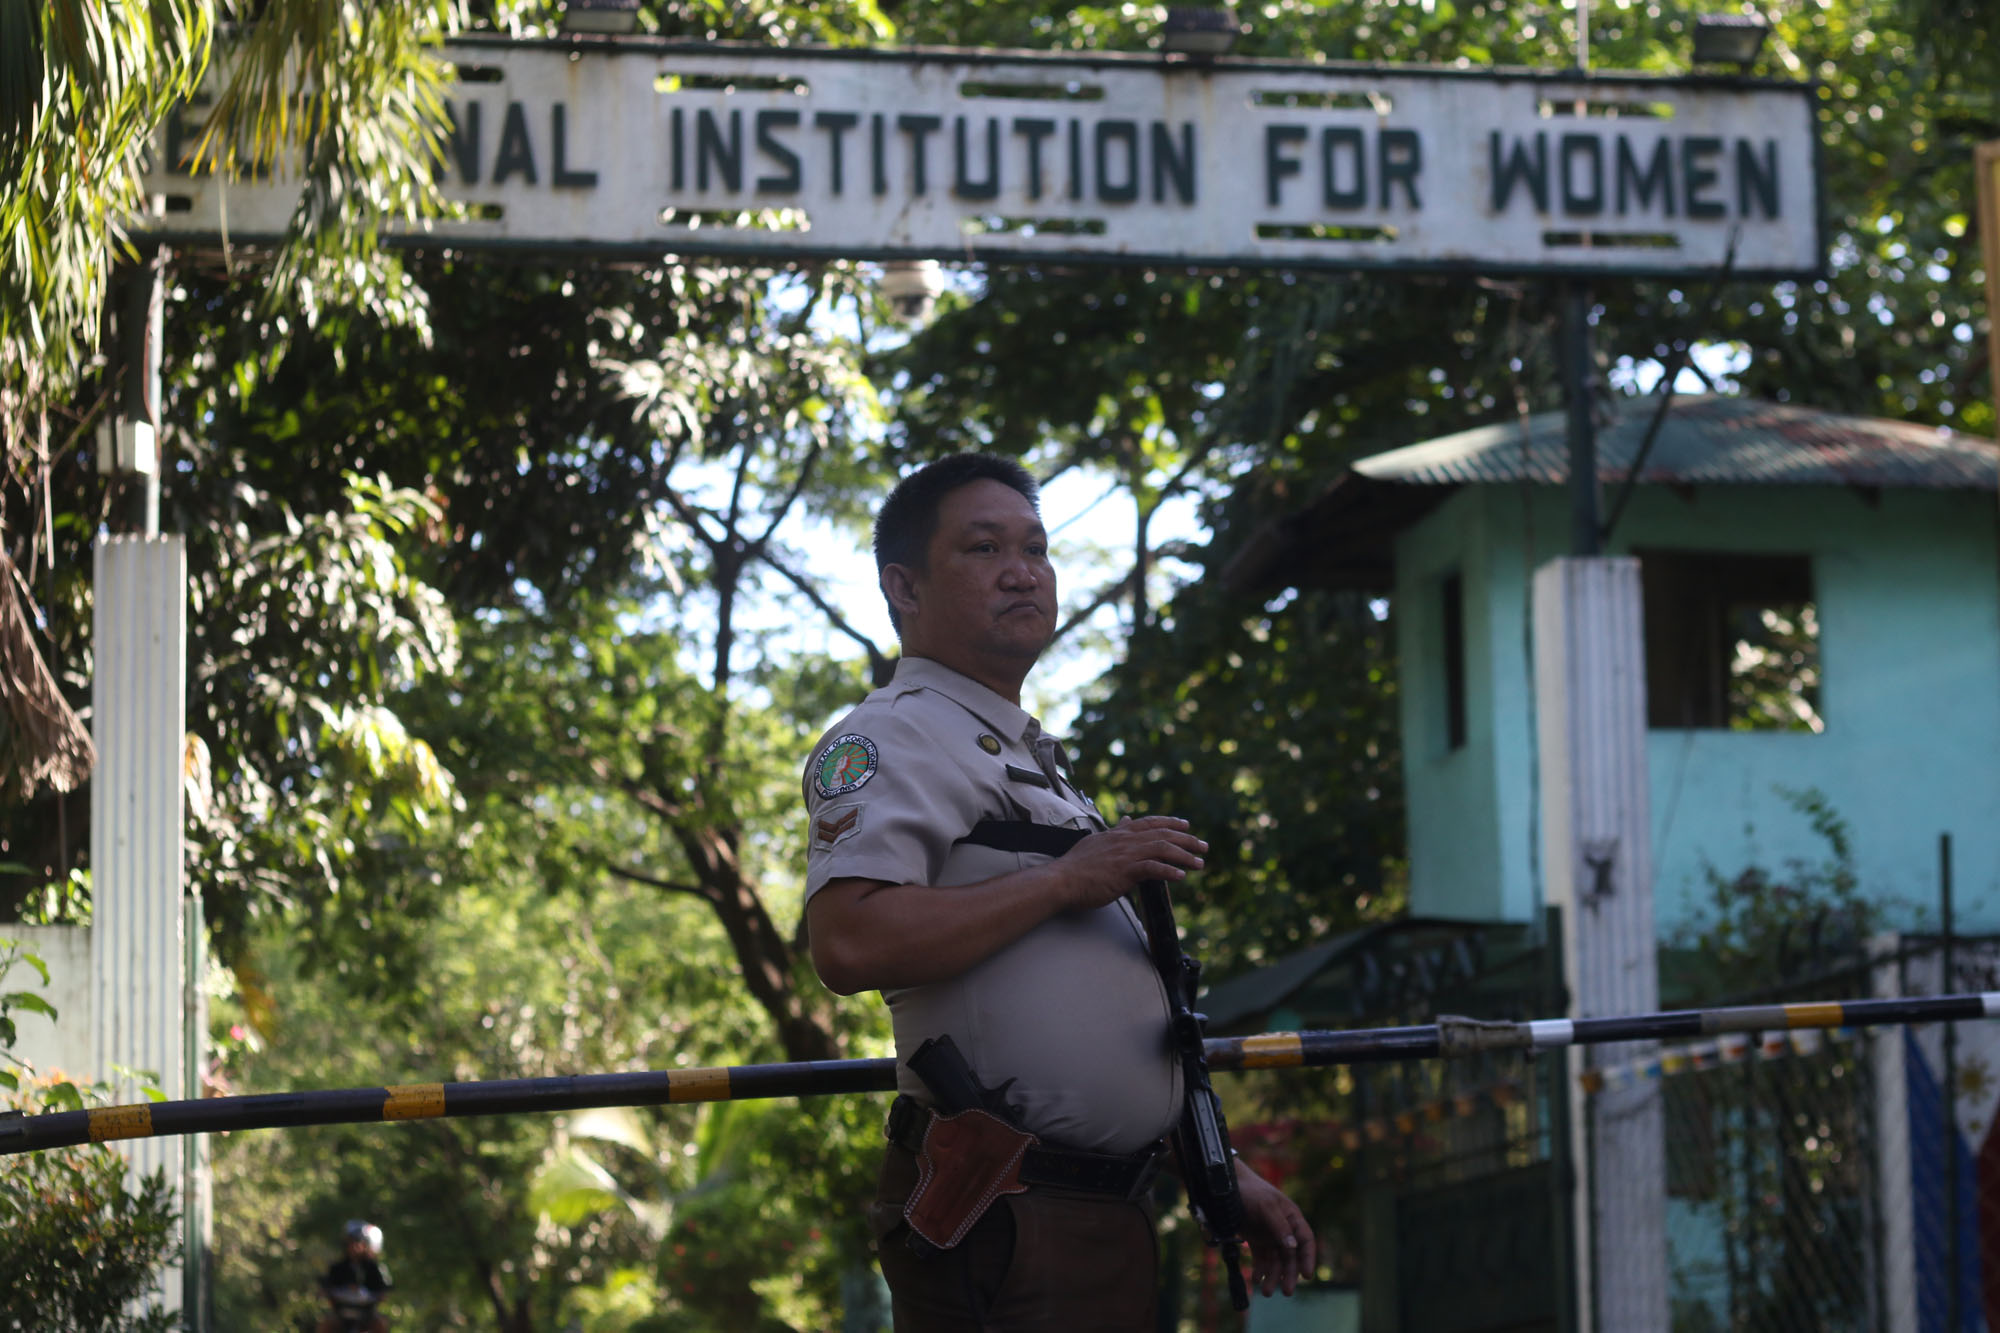 DETENTION FACILITY. The Correctional Institution for Women in Mandaluyong City where pork barrel scam mastermind Janet Lim Napoles was previously jailed. File photo by Inoue Jaena/Rappler